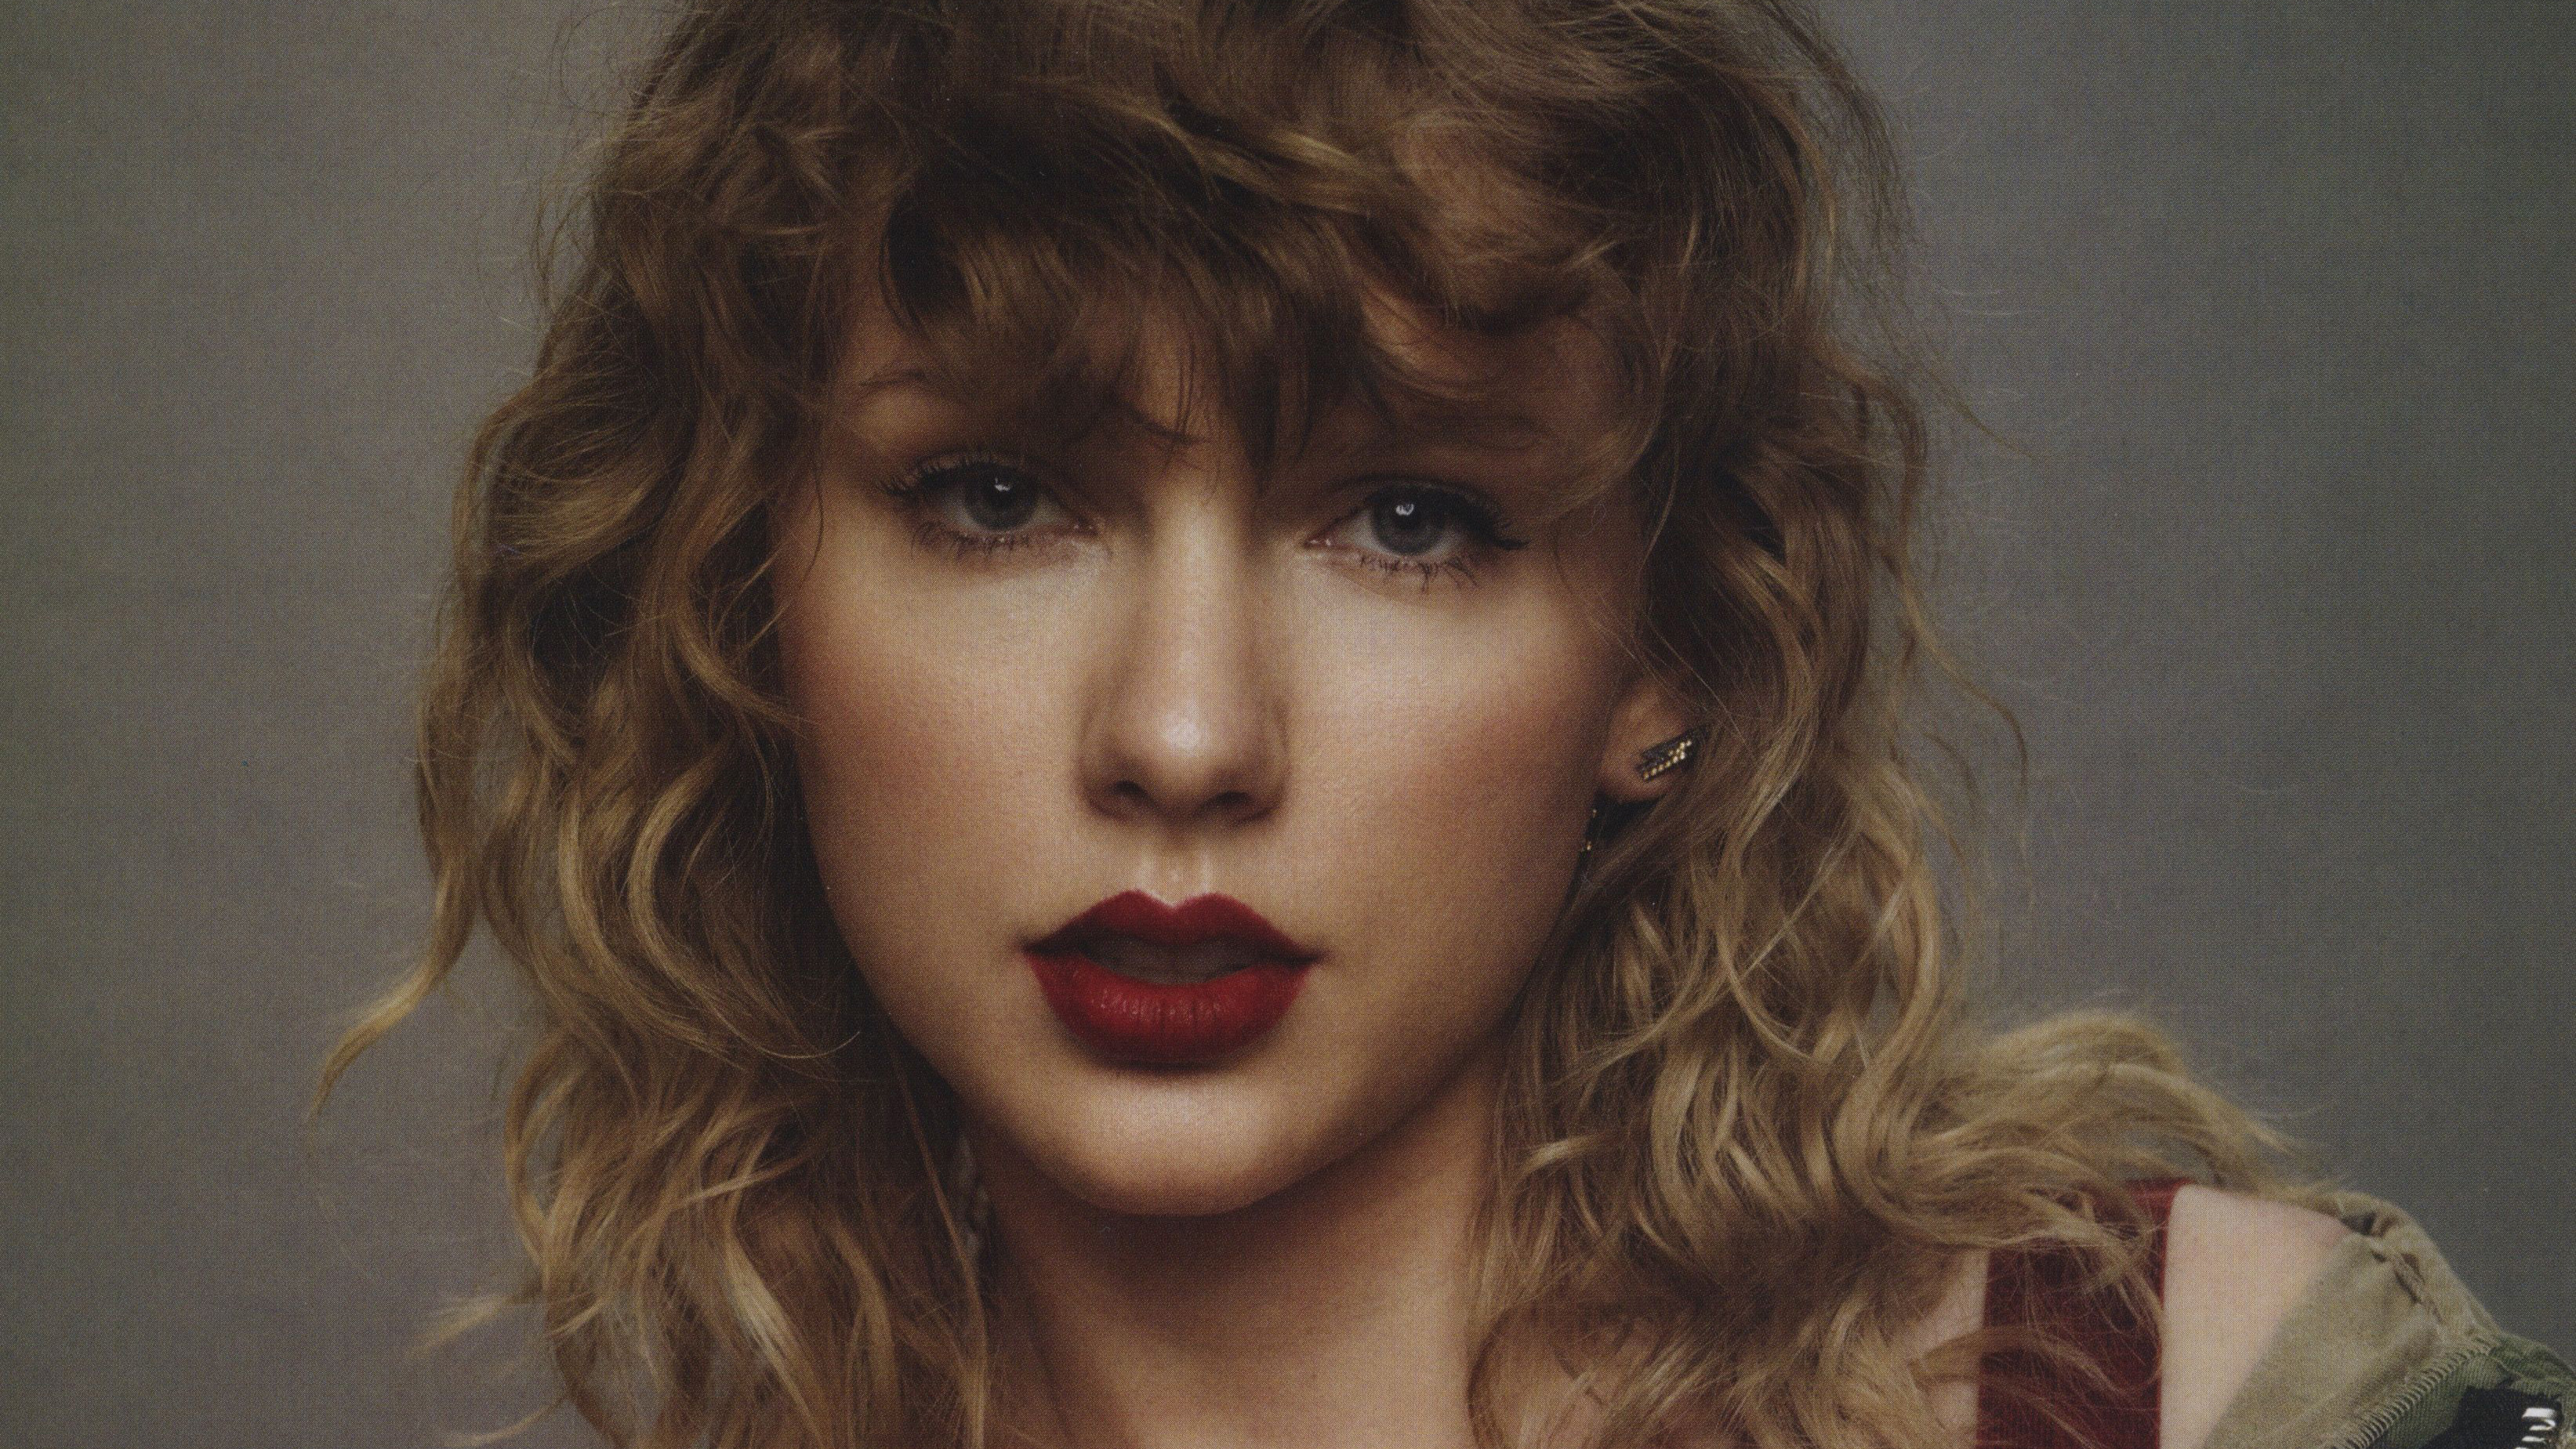 taylor swift 2018 4k, hd music, 4k wallpapers, images, backgrounds